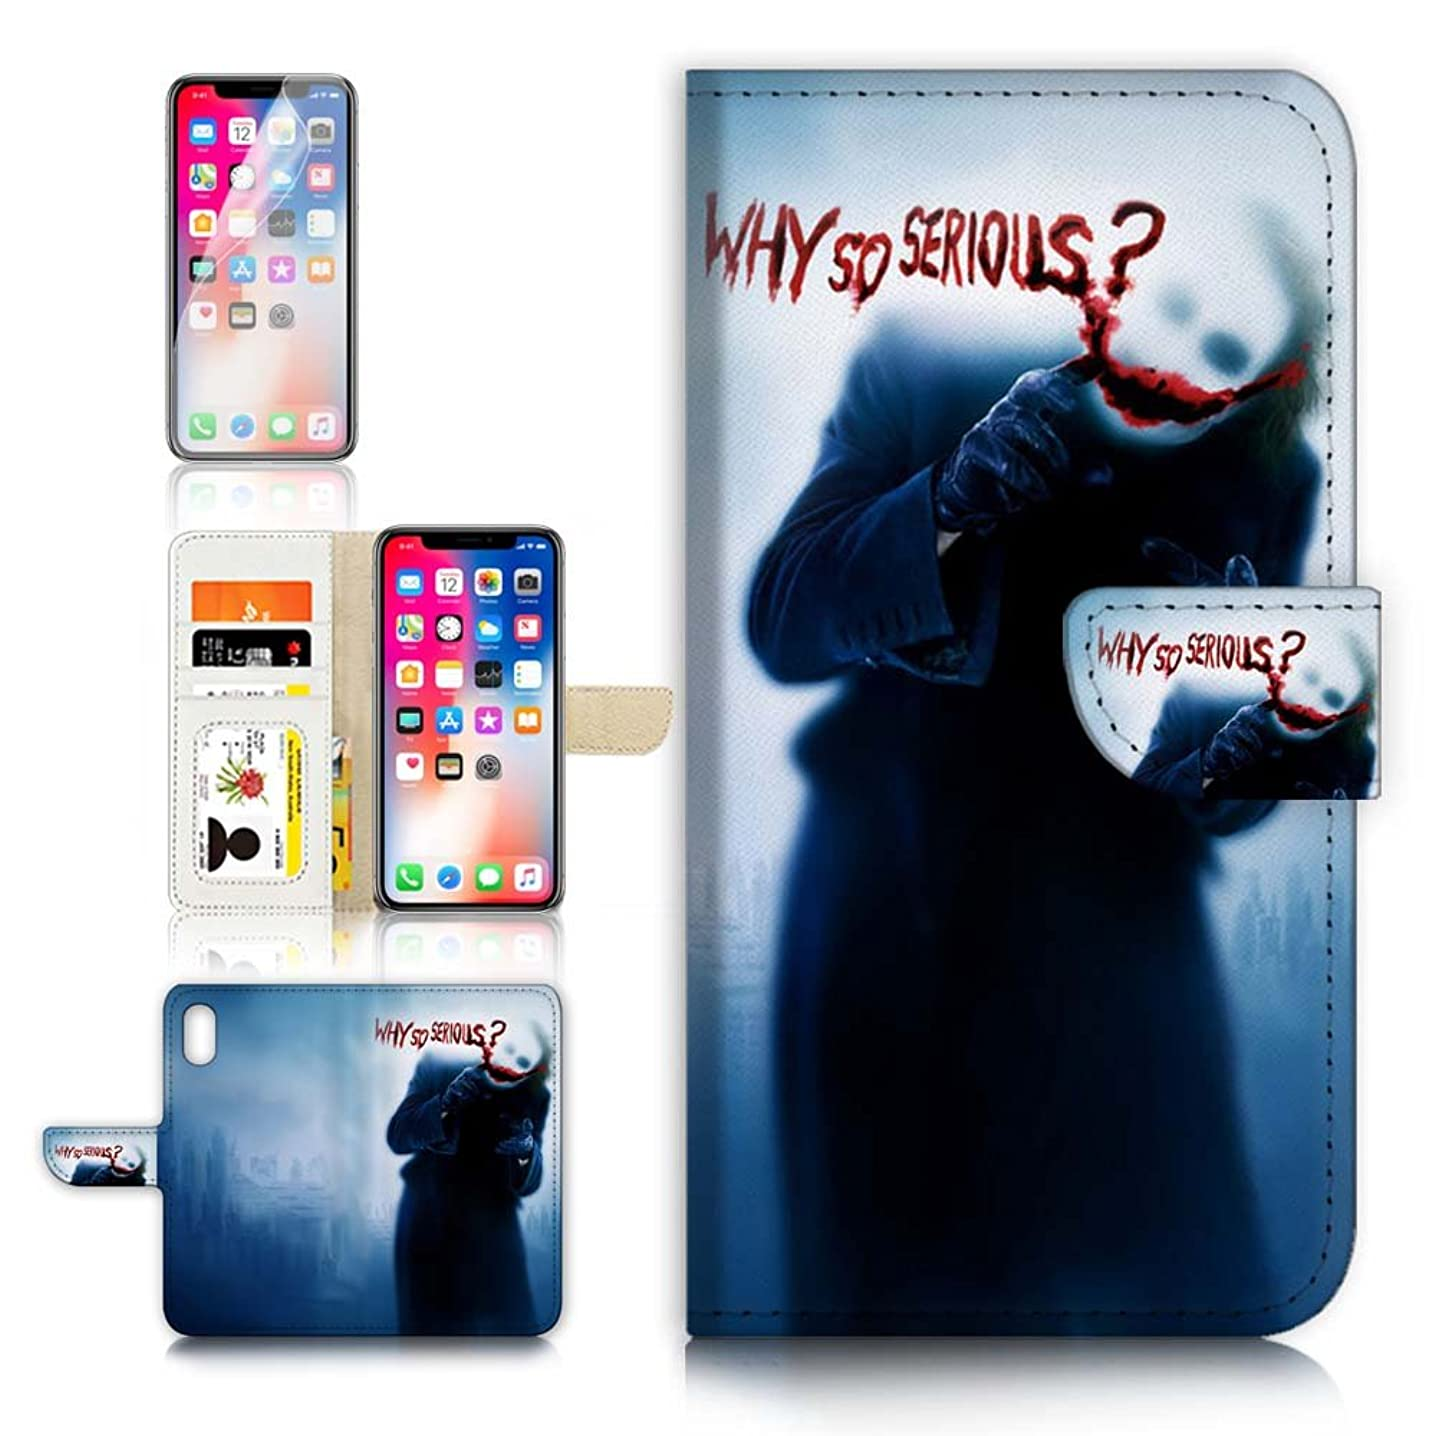 (for iPhone XS MAX) Flip Wallet Case Cover & Screen Protector Bundle - A21179 Joker So Serious